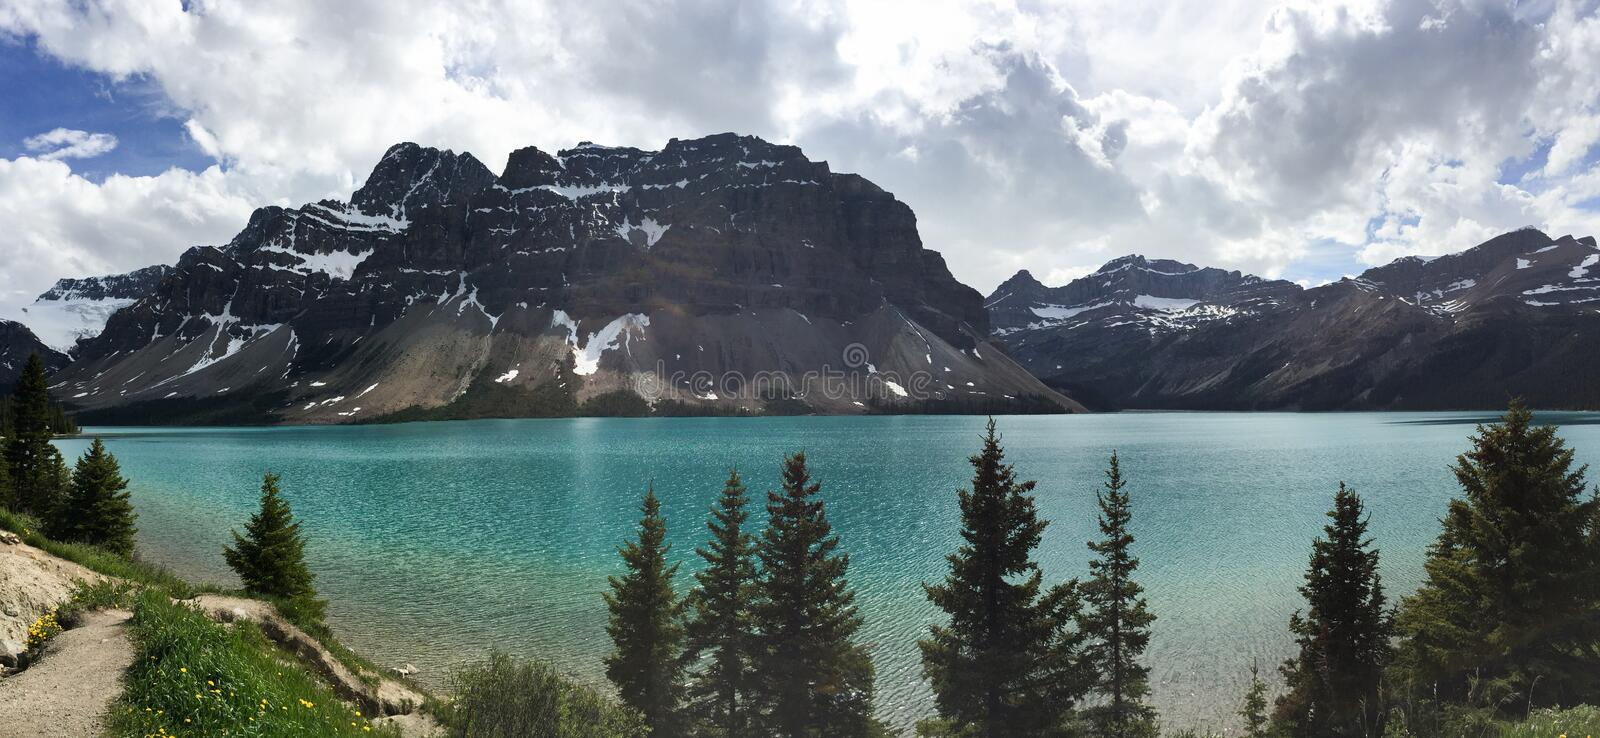 Snow-capped mountains rise above a turquoise glacial lake in Banff Canada; panorama stock photos